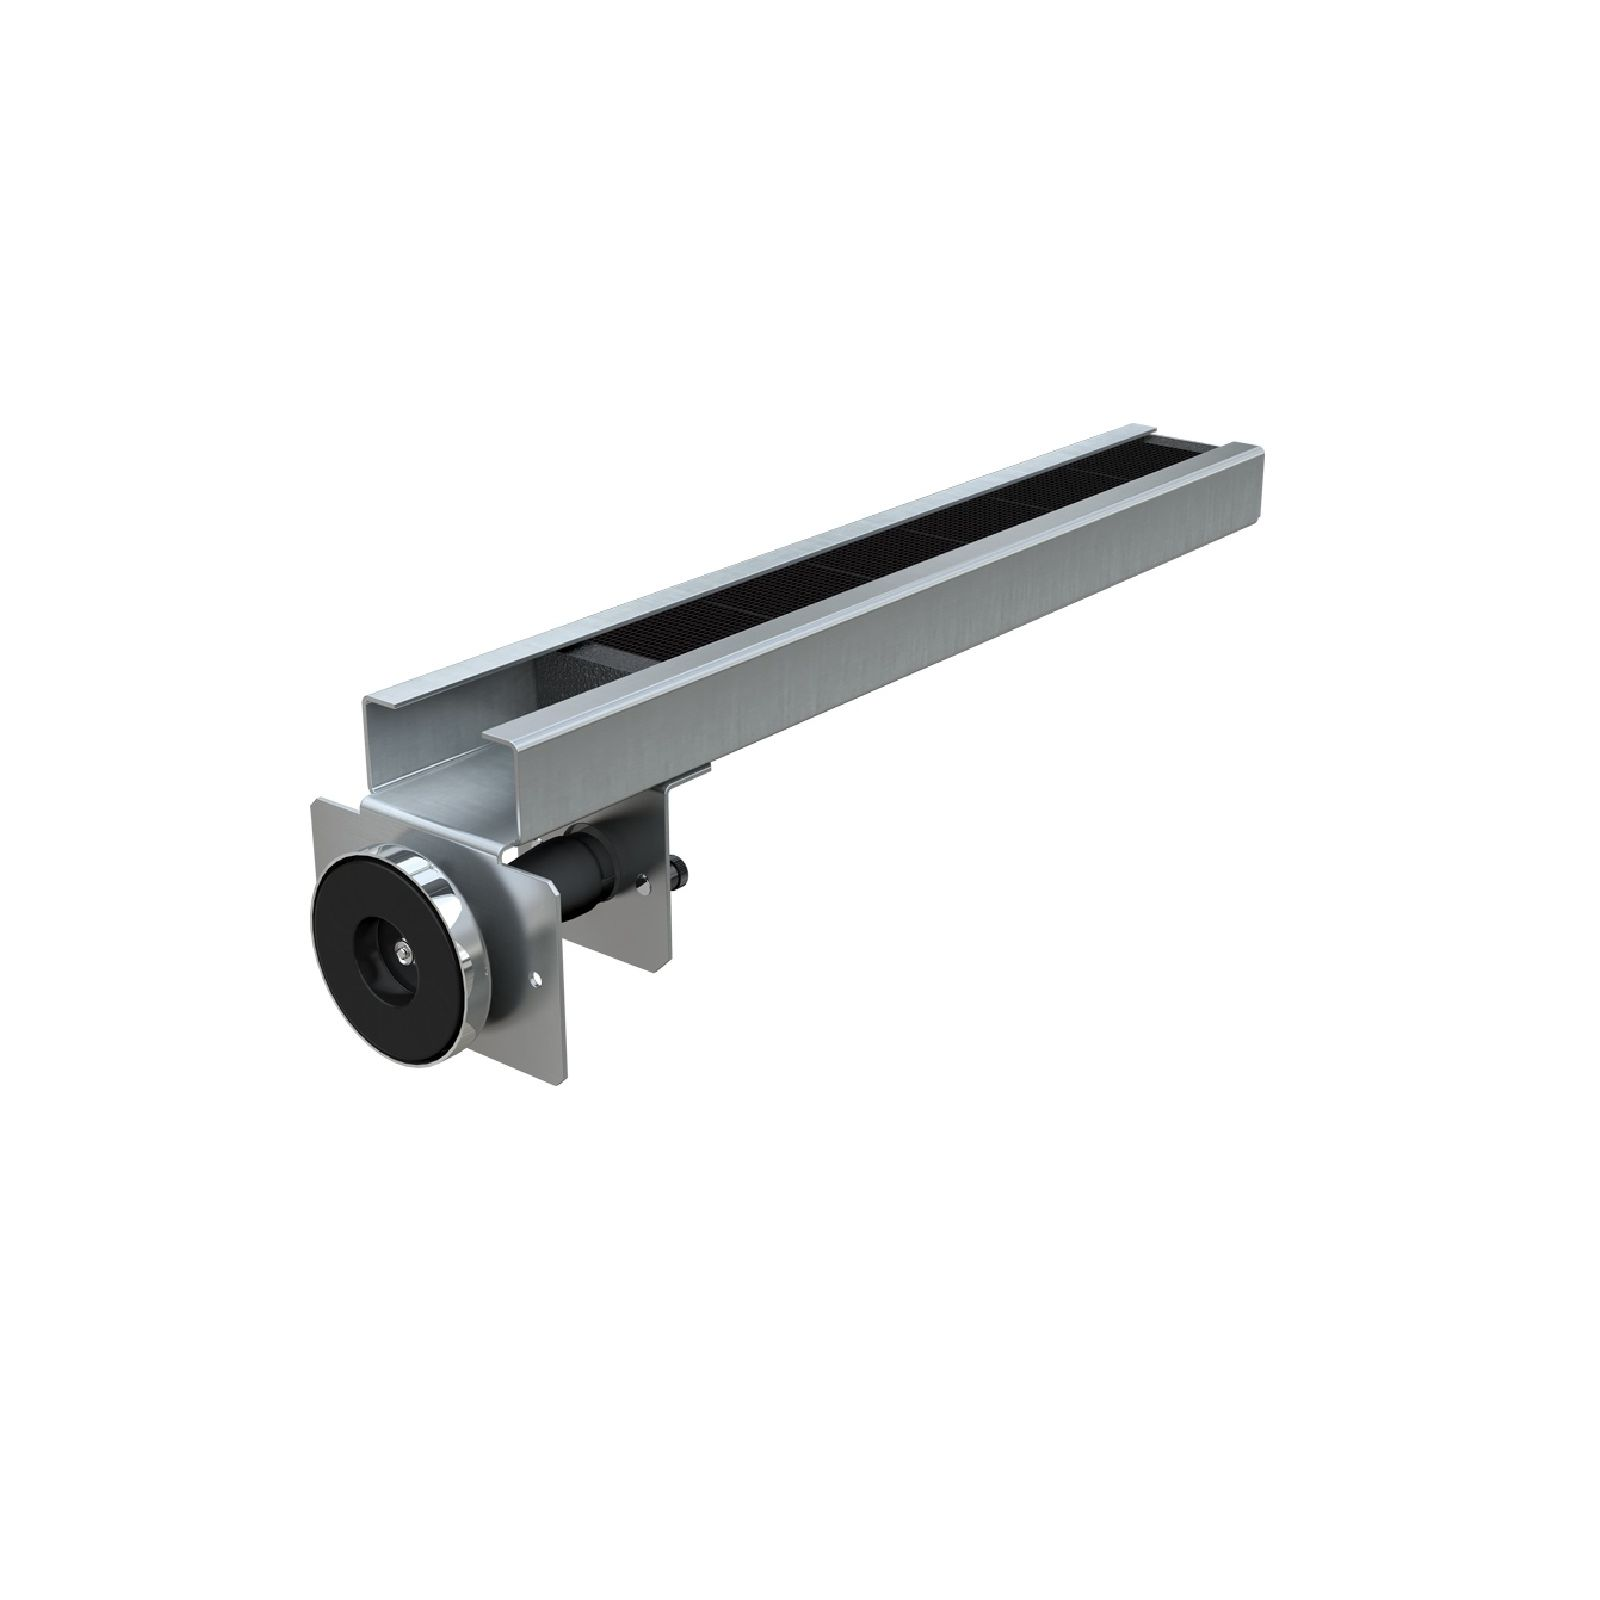 Triatomic TUV-APCO-MAG15 - Fresh Aire APCO Magnetic Mount UV System